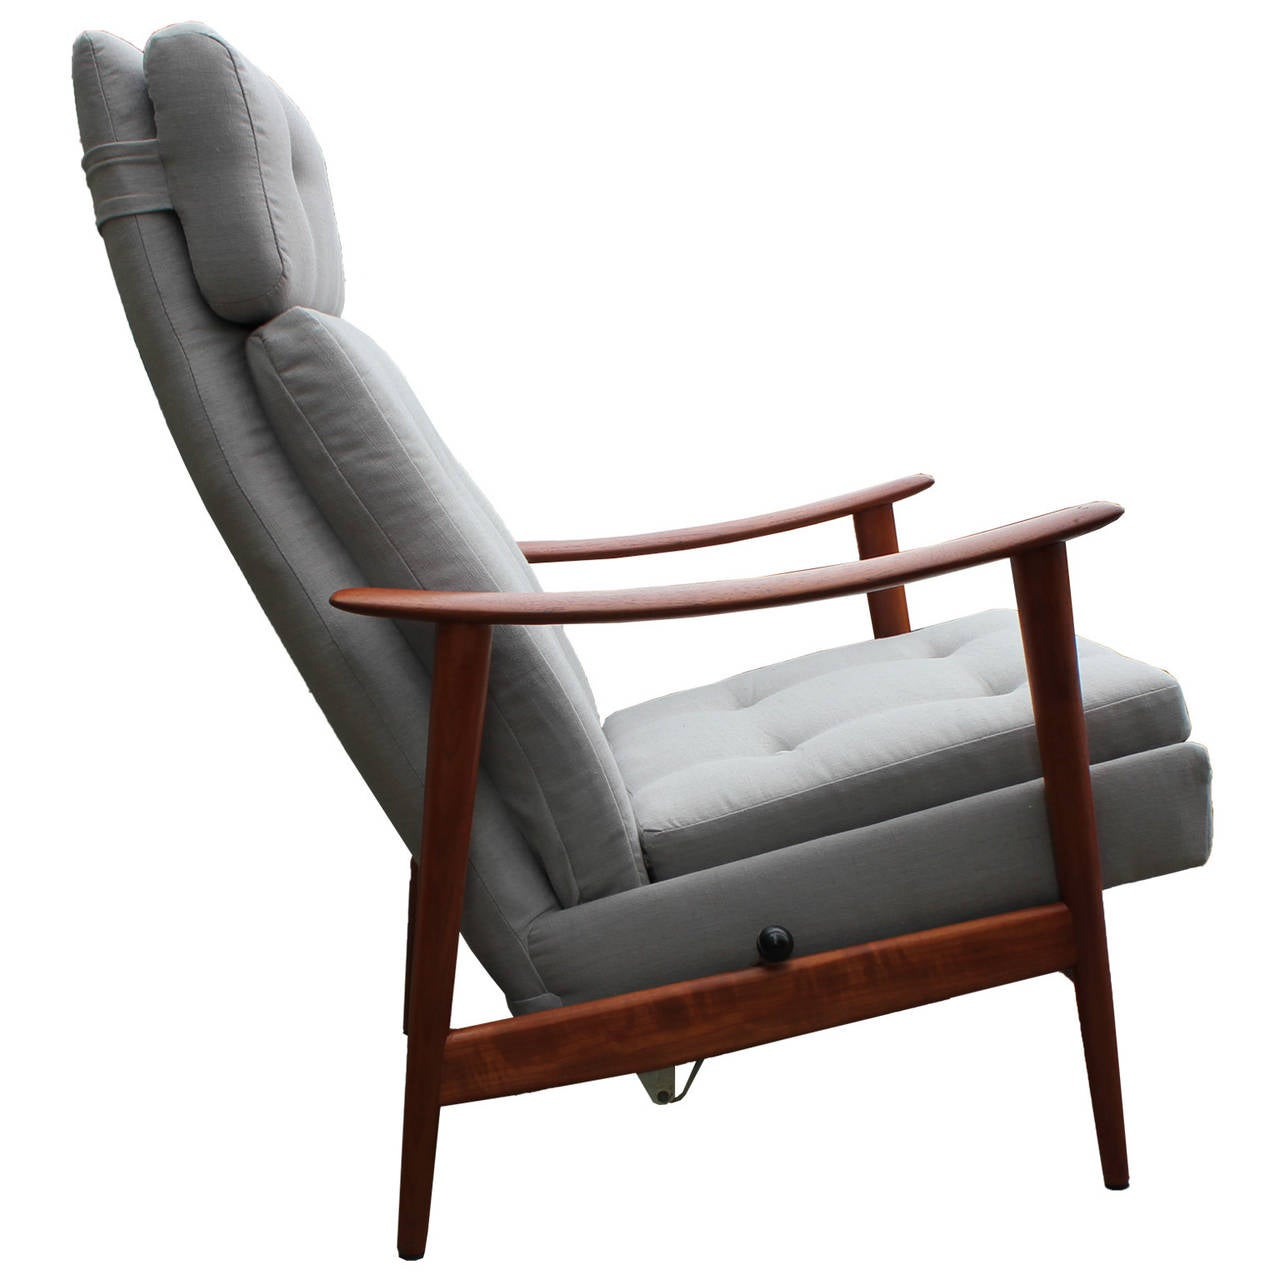 swedish leather recliner chairs french country restored scandinavian teak in grey linen at 1stdibs